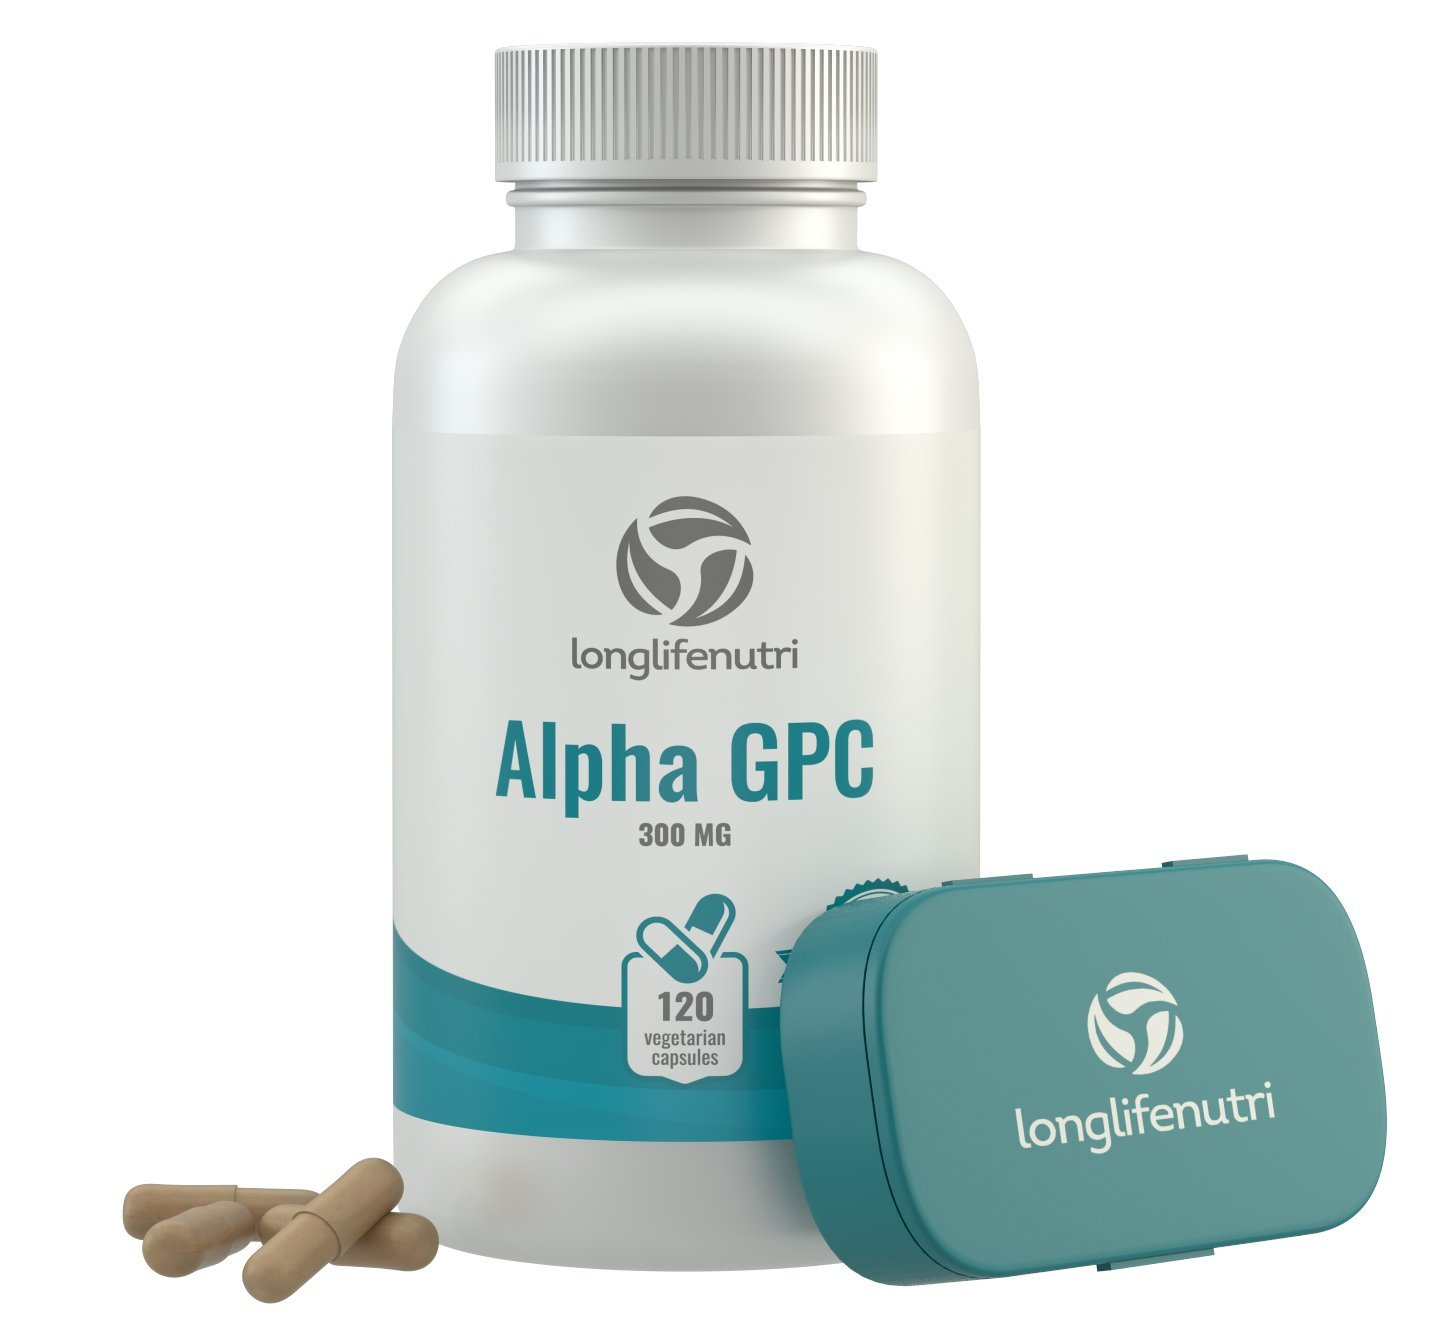 Alpha GPC Choline Supplement 300mg - 120 Vegetarian Capsules | Made In Usa | Cognitive Enhancer Nootropic | Supports Memory & Brain Function | Boosts Focus & Mood | 300 mg Pure Powder Pills Complex by LongLifeNutri